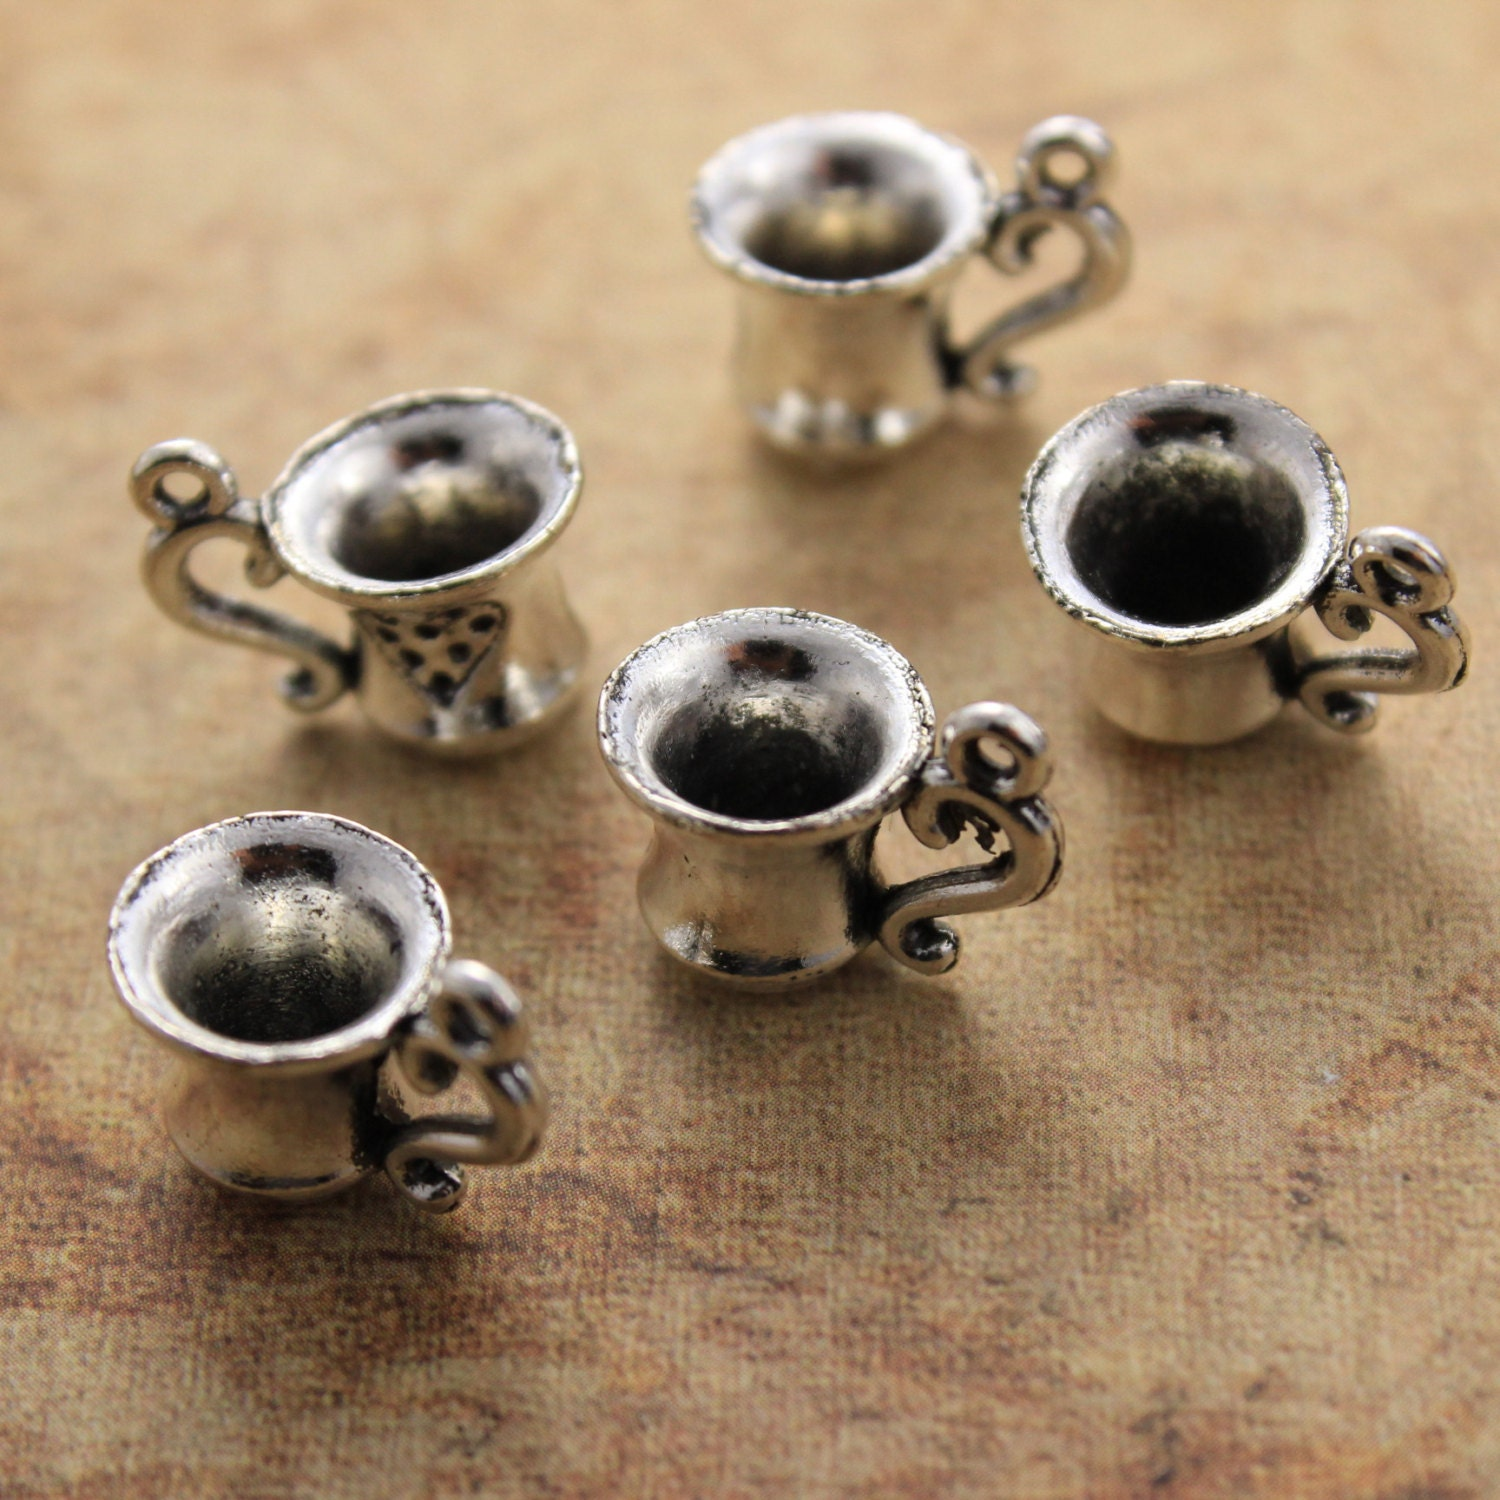 10 Coffee Cup Charms Tea Cup Charms Antiqued Silver Tone 3D 10 - photo#48